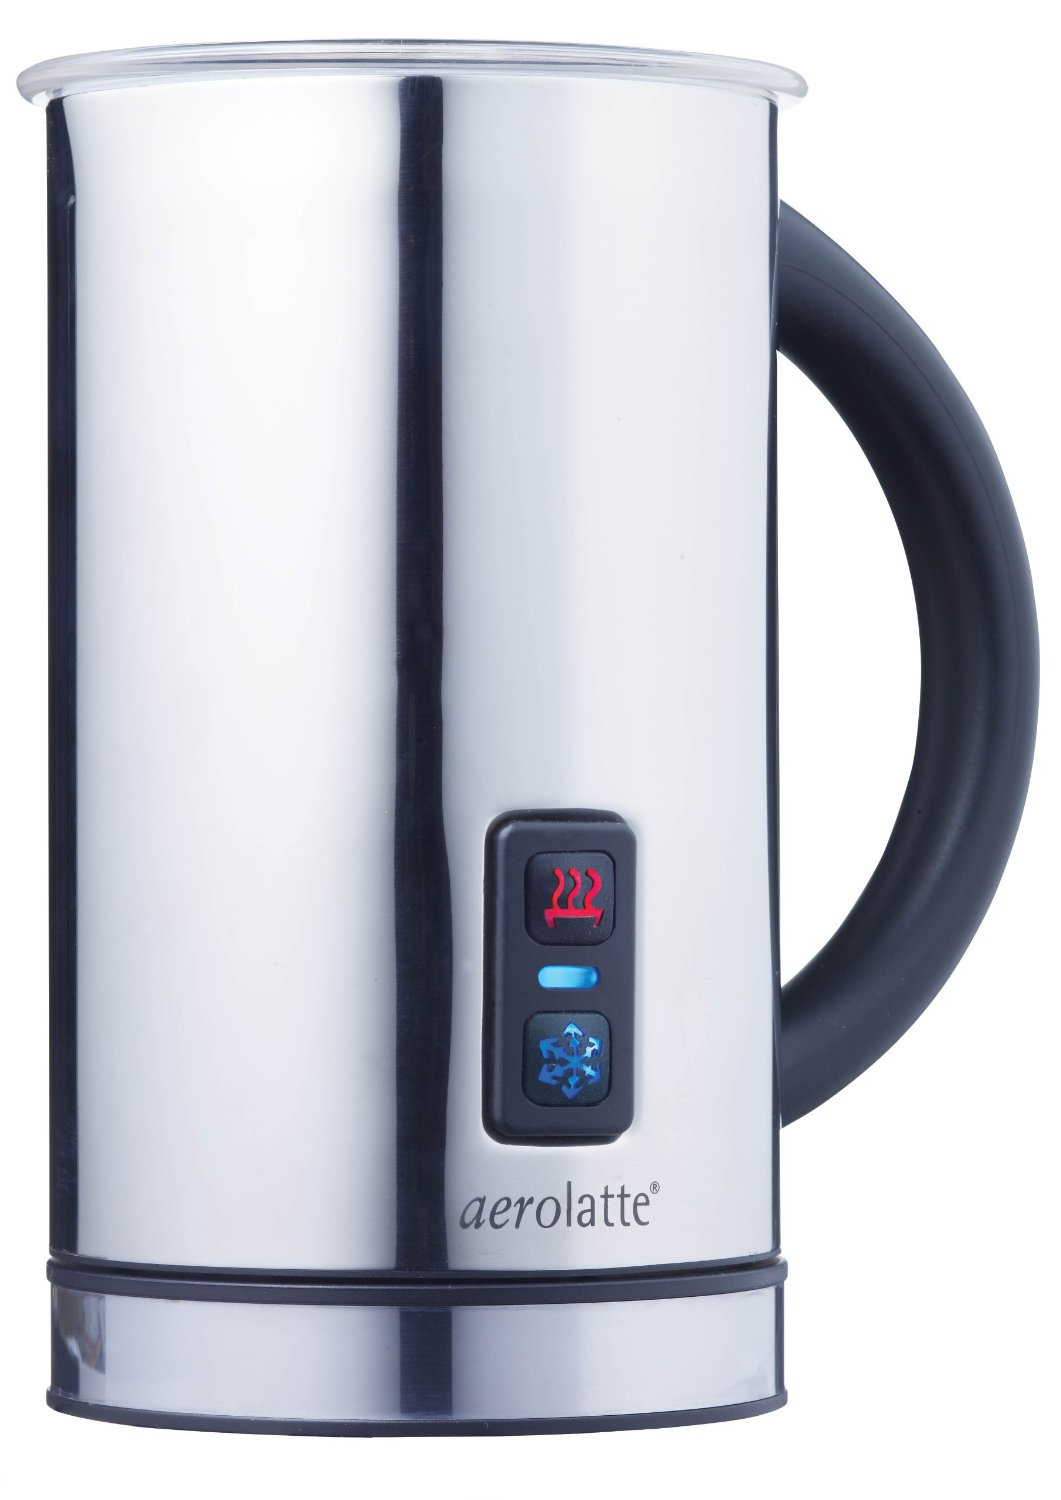 Aerolatte Compact Milk Frother - Electric